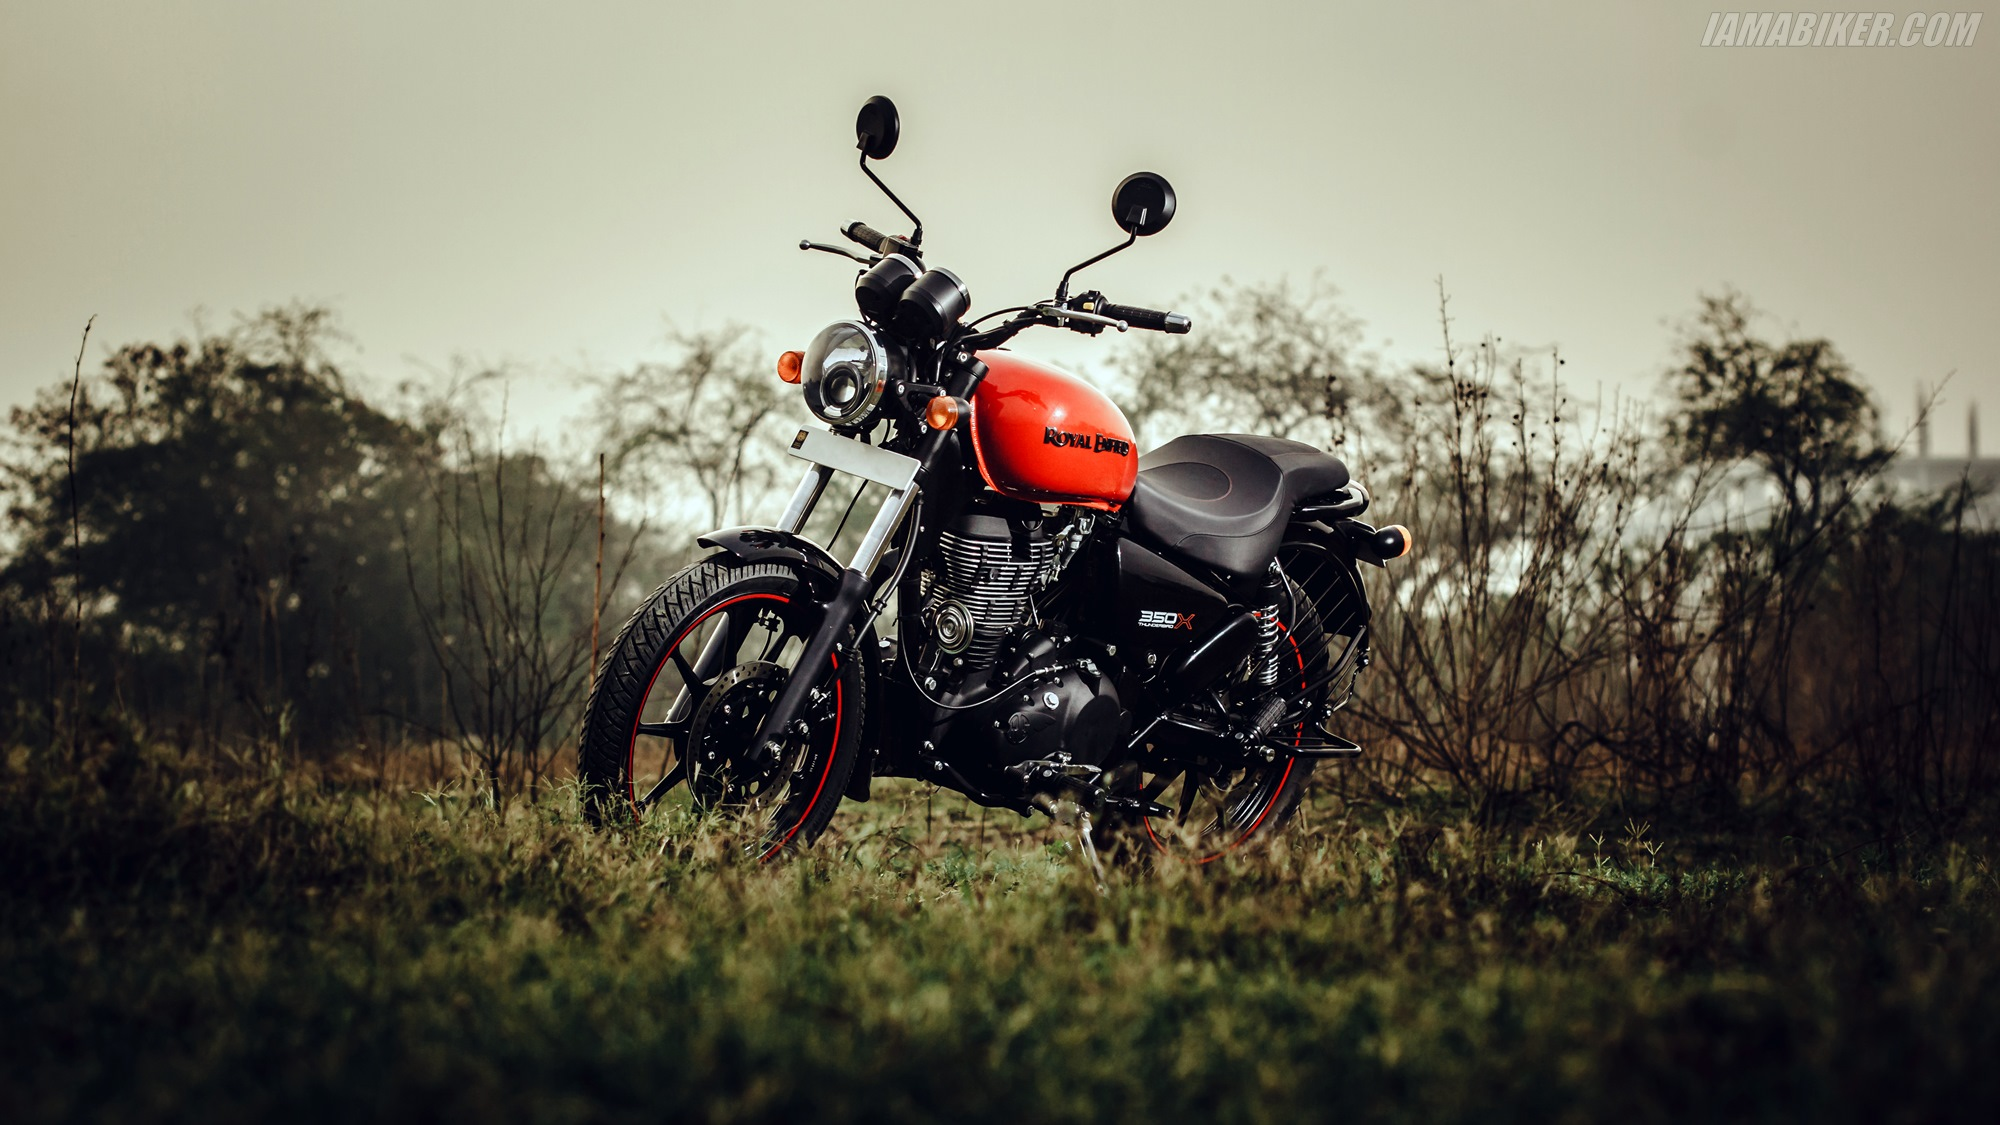 Royal enfield thunderbird 350x hd wallpapers iamabiker - Royal enfield classic 350 wallpaper ...